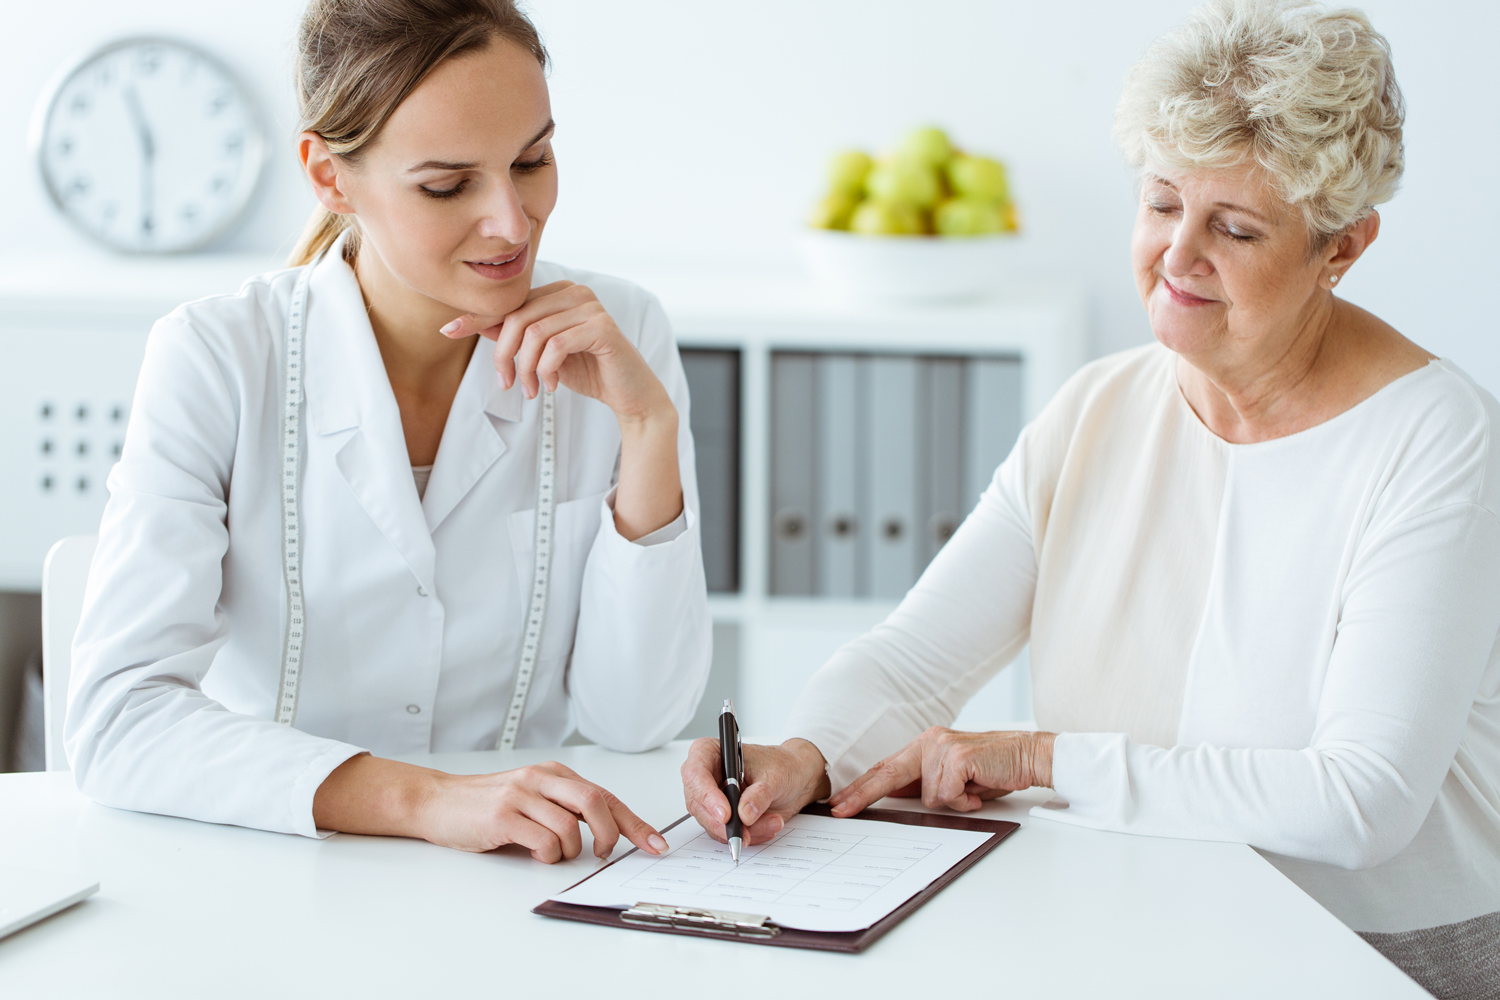 Type 2 Diabetes Self-Management Education and Support